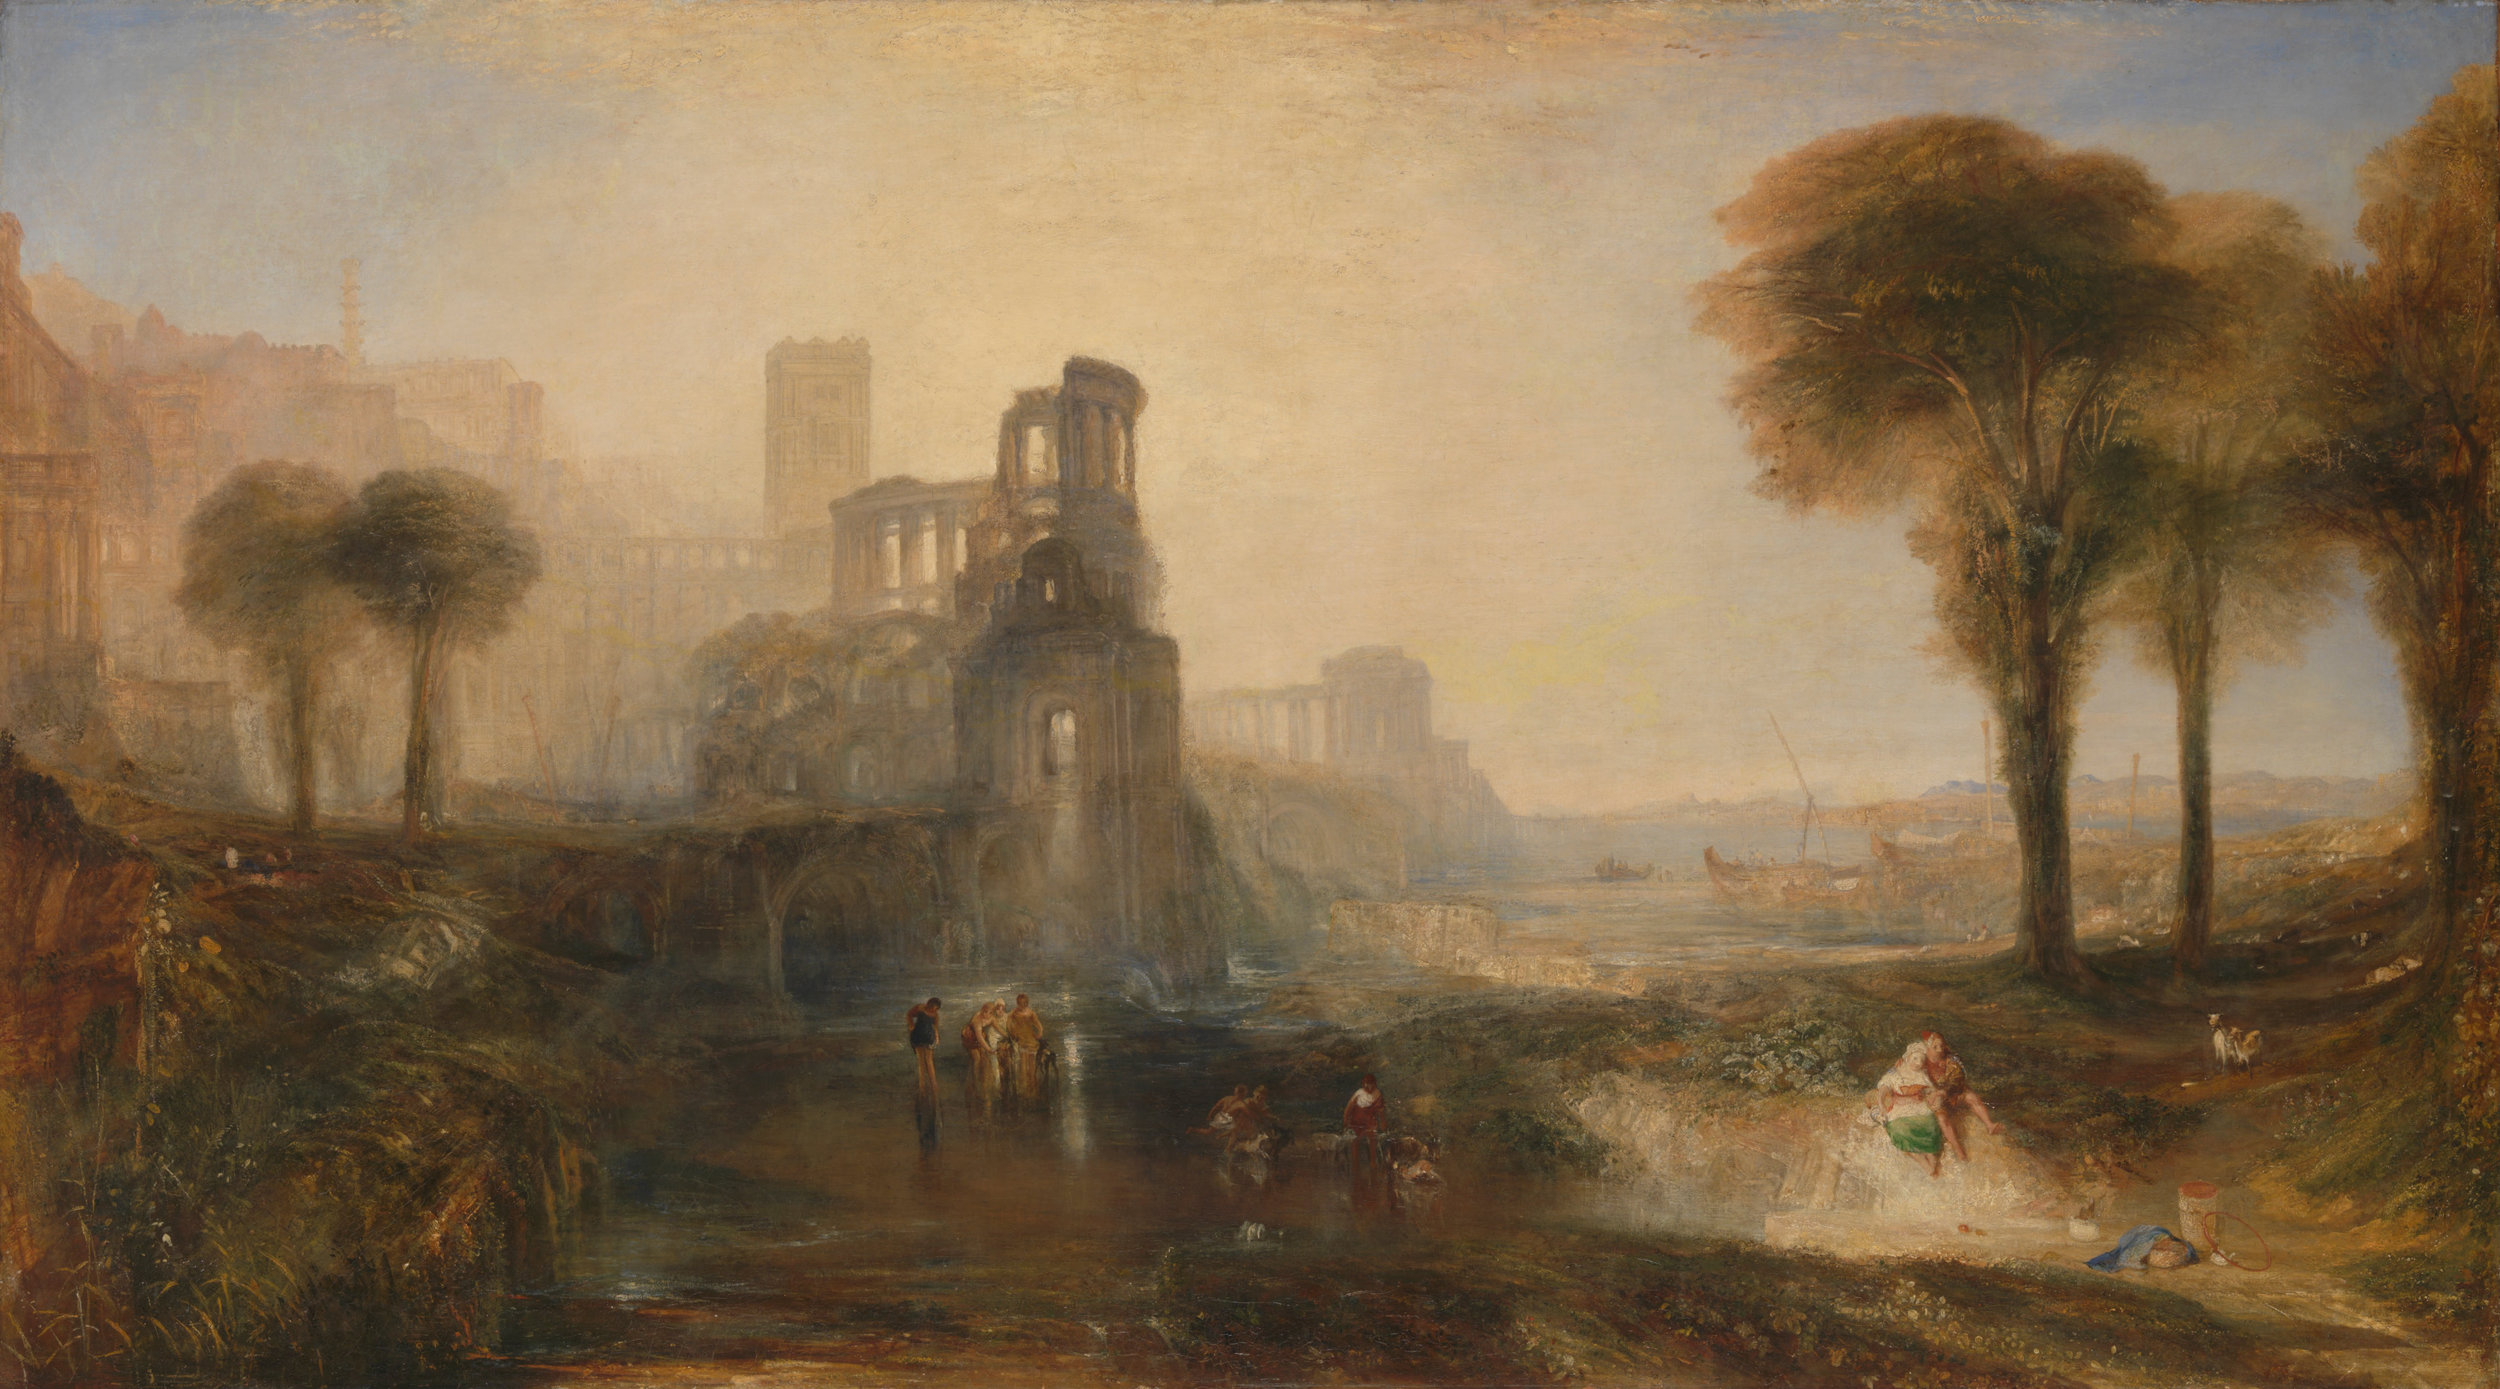 J. M. W. Turner, Caligula's Palace and Bridge, 1831 © Tate Britain, Photo © Tate CC-BY-NC-ND 3.0 (Unported)